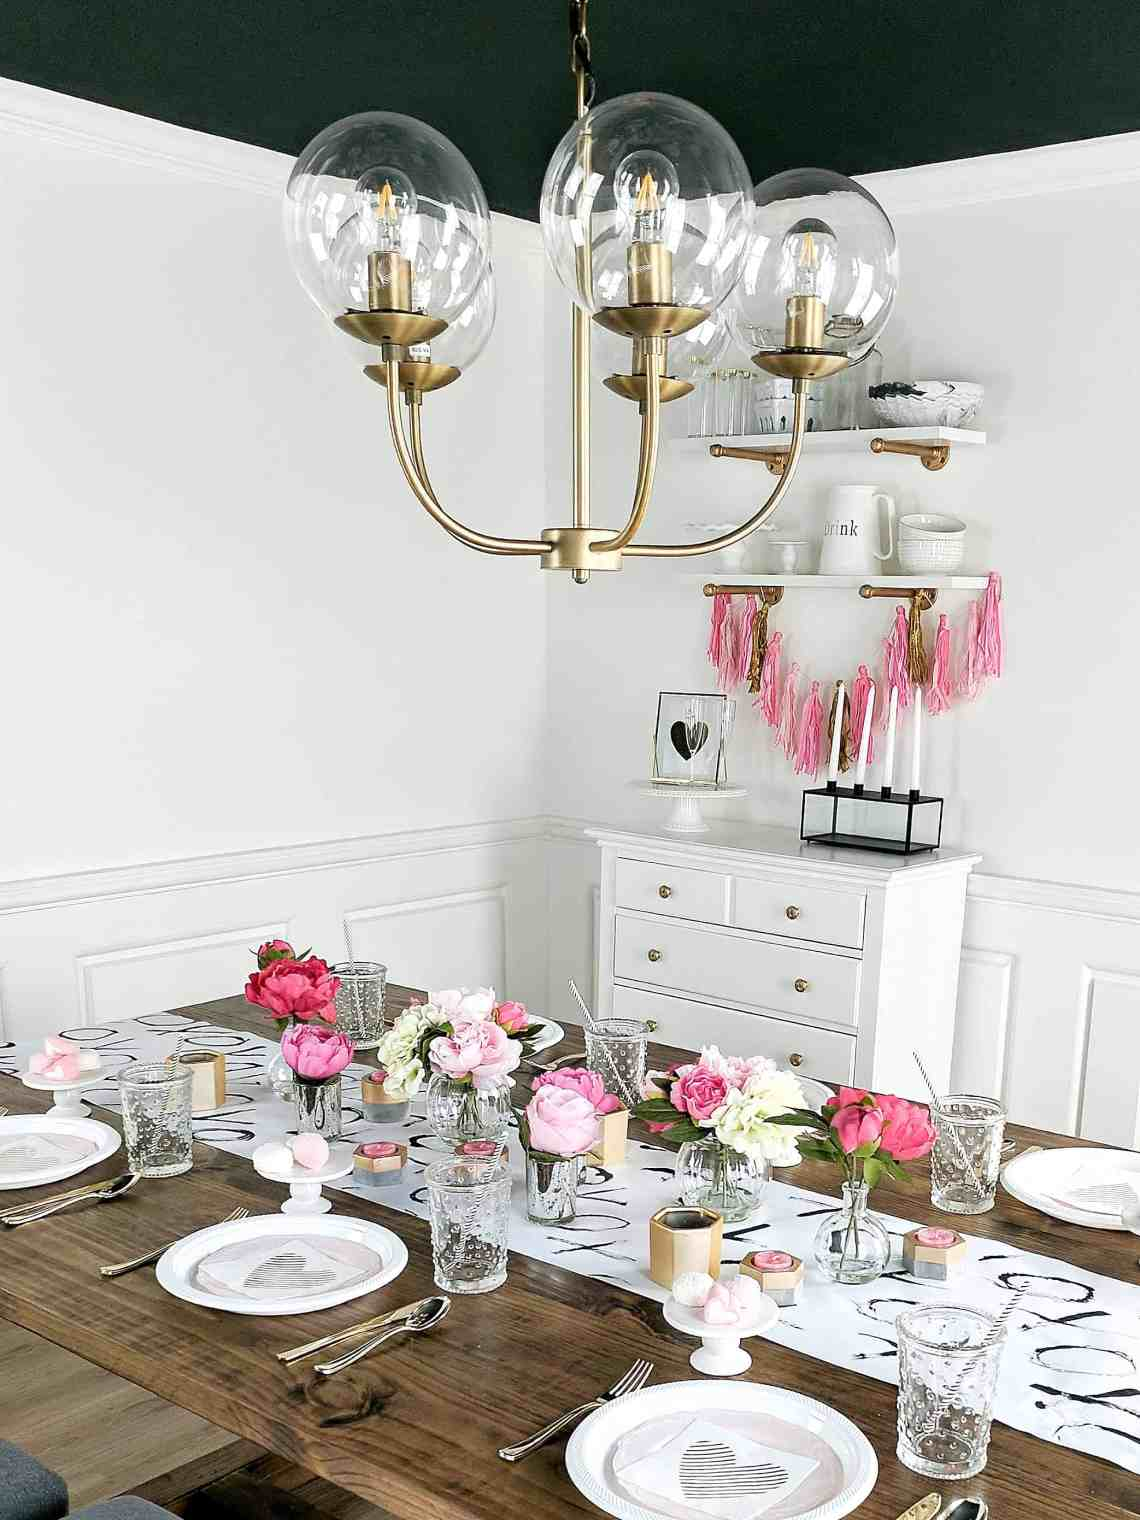 white room with gold chandelier and floral tablesetting